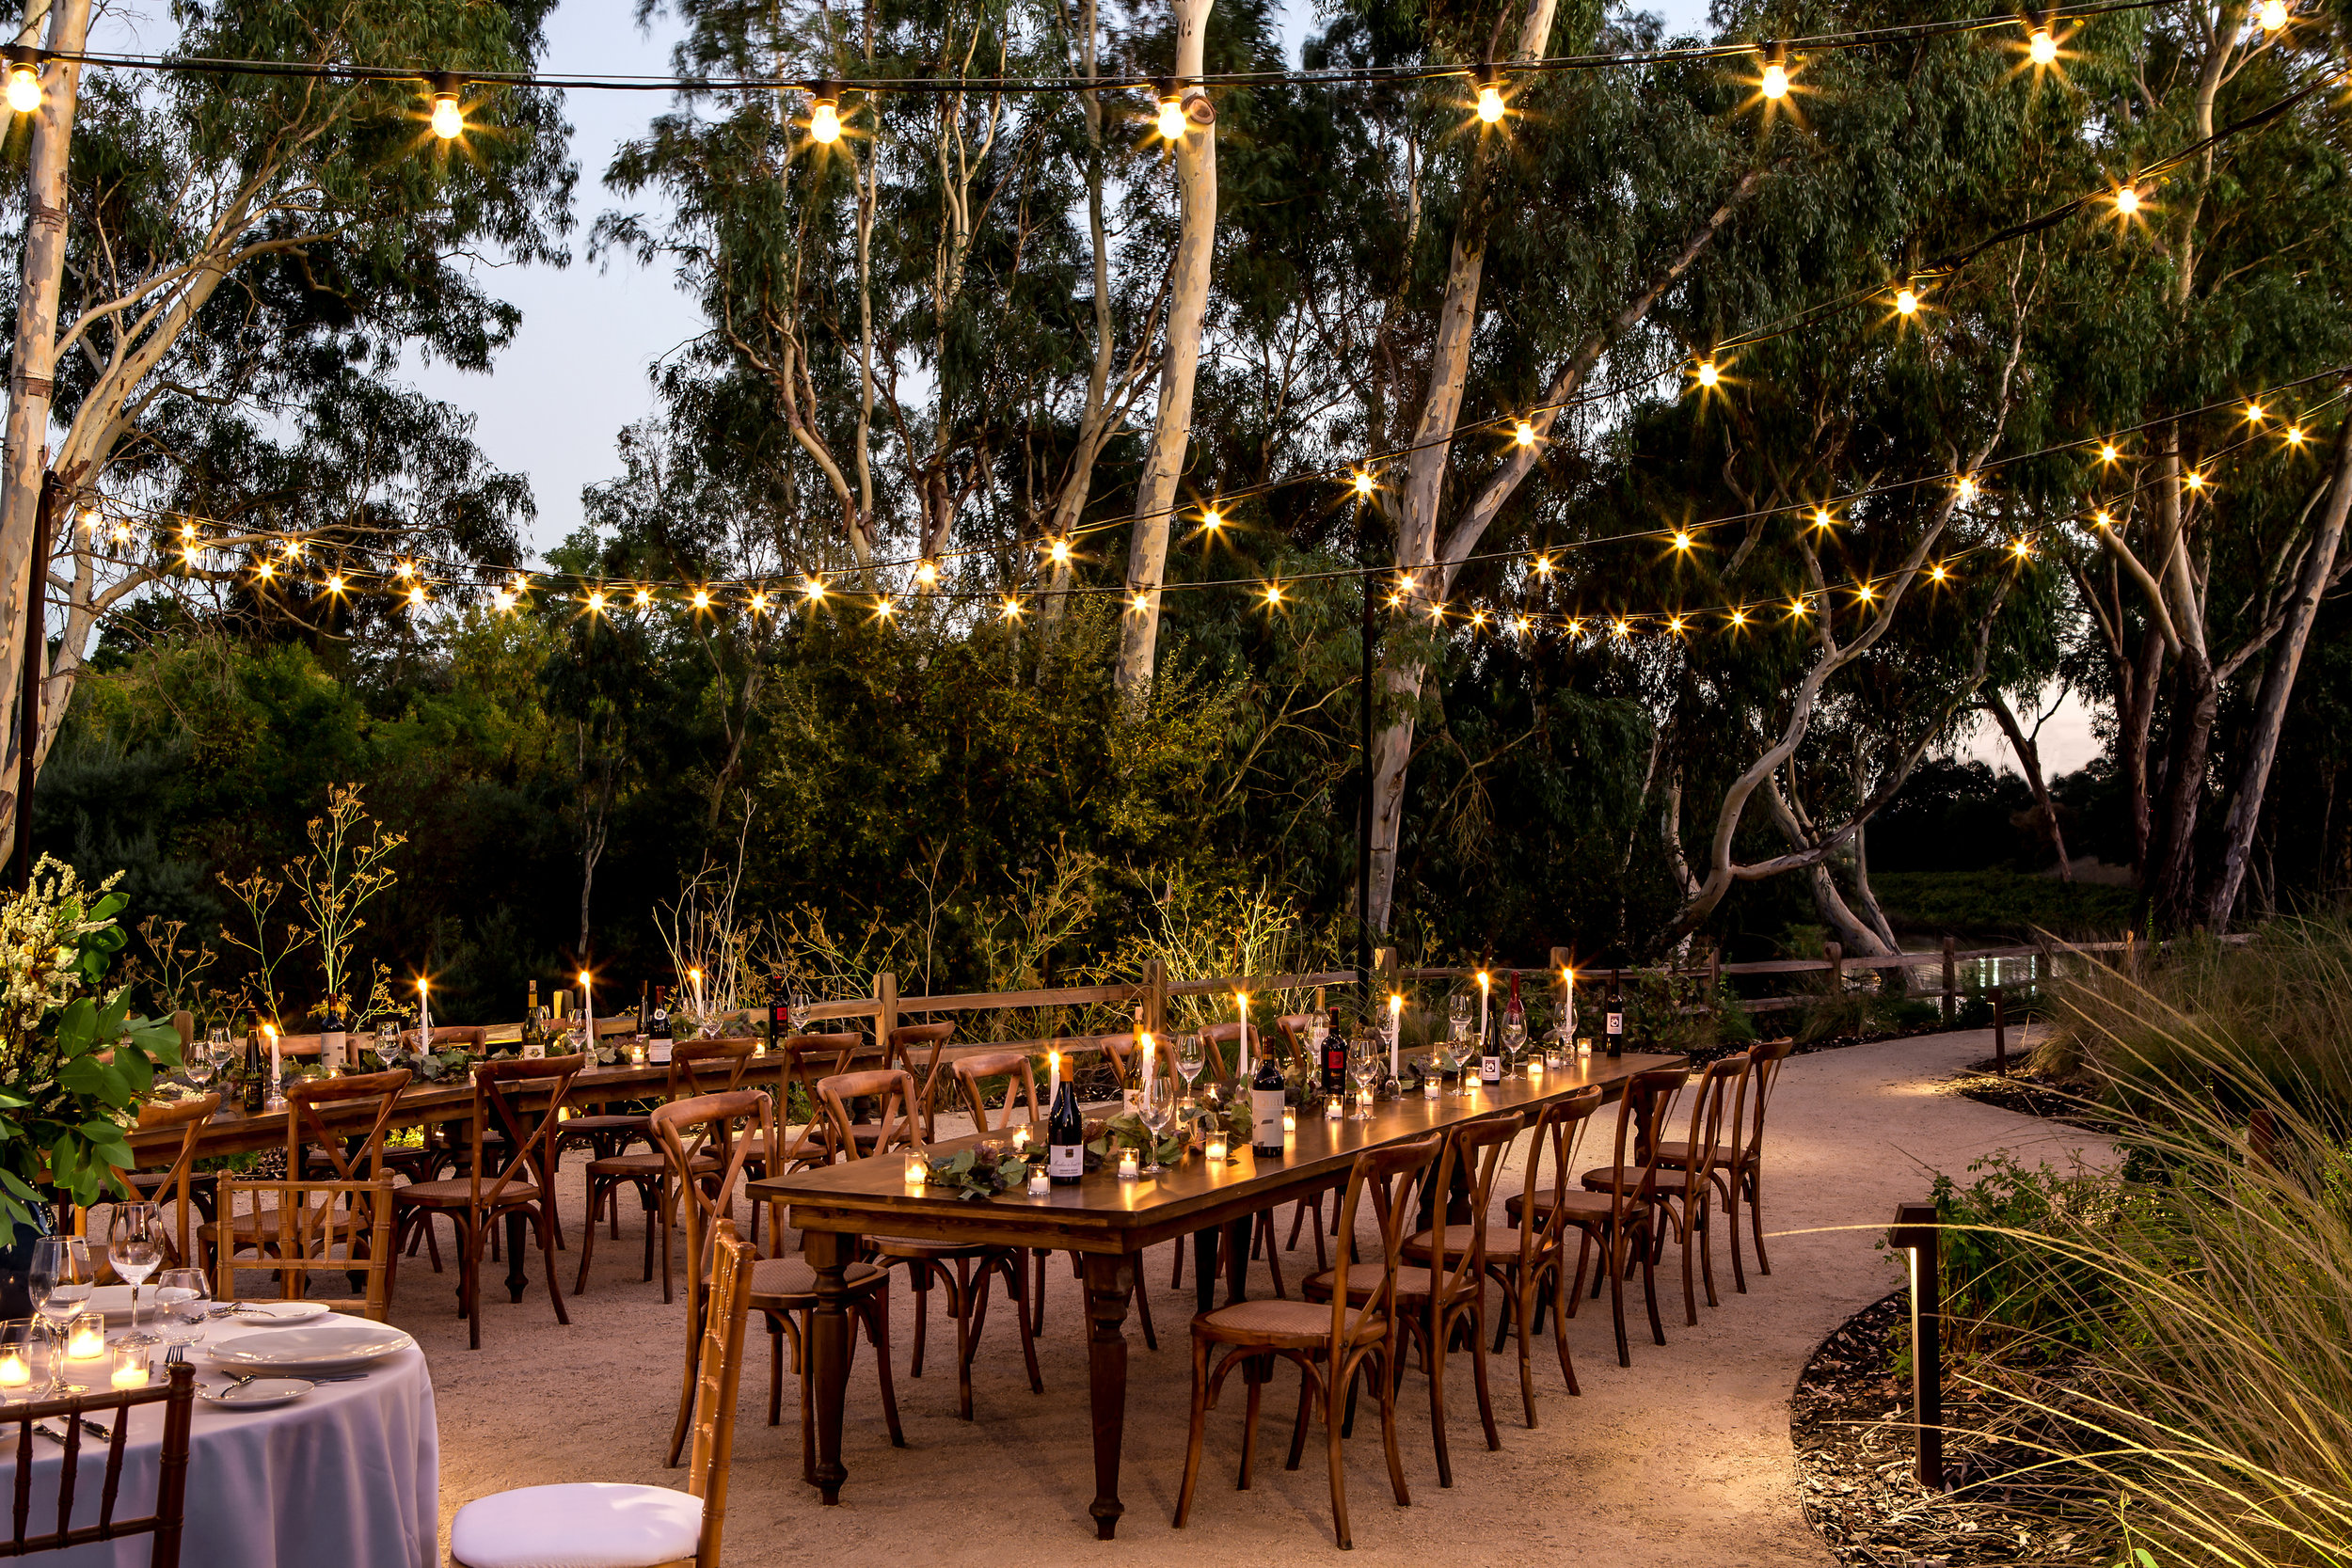 String Lighting at Napa River Terrace Inn (Hi-Res).jpg